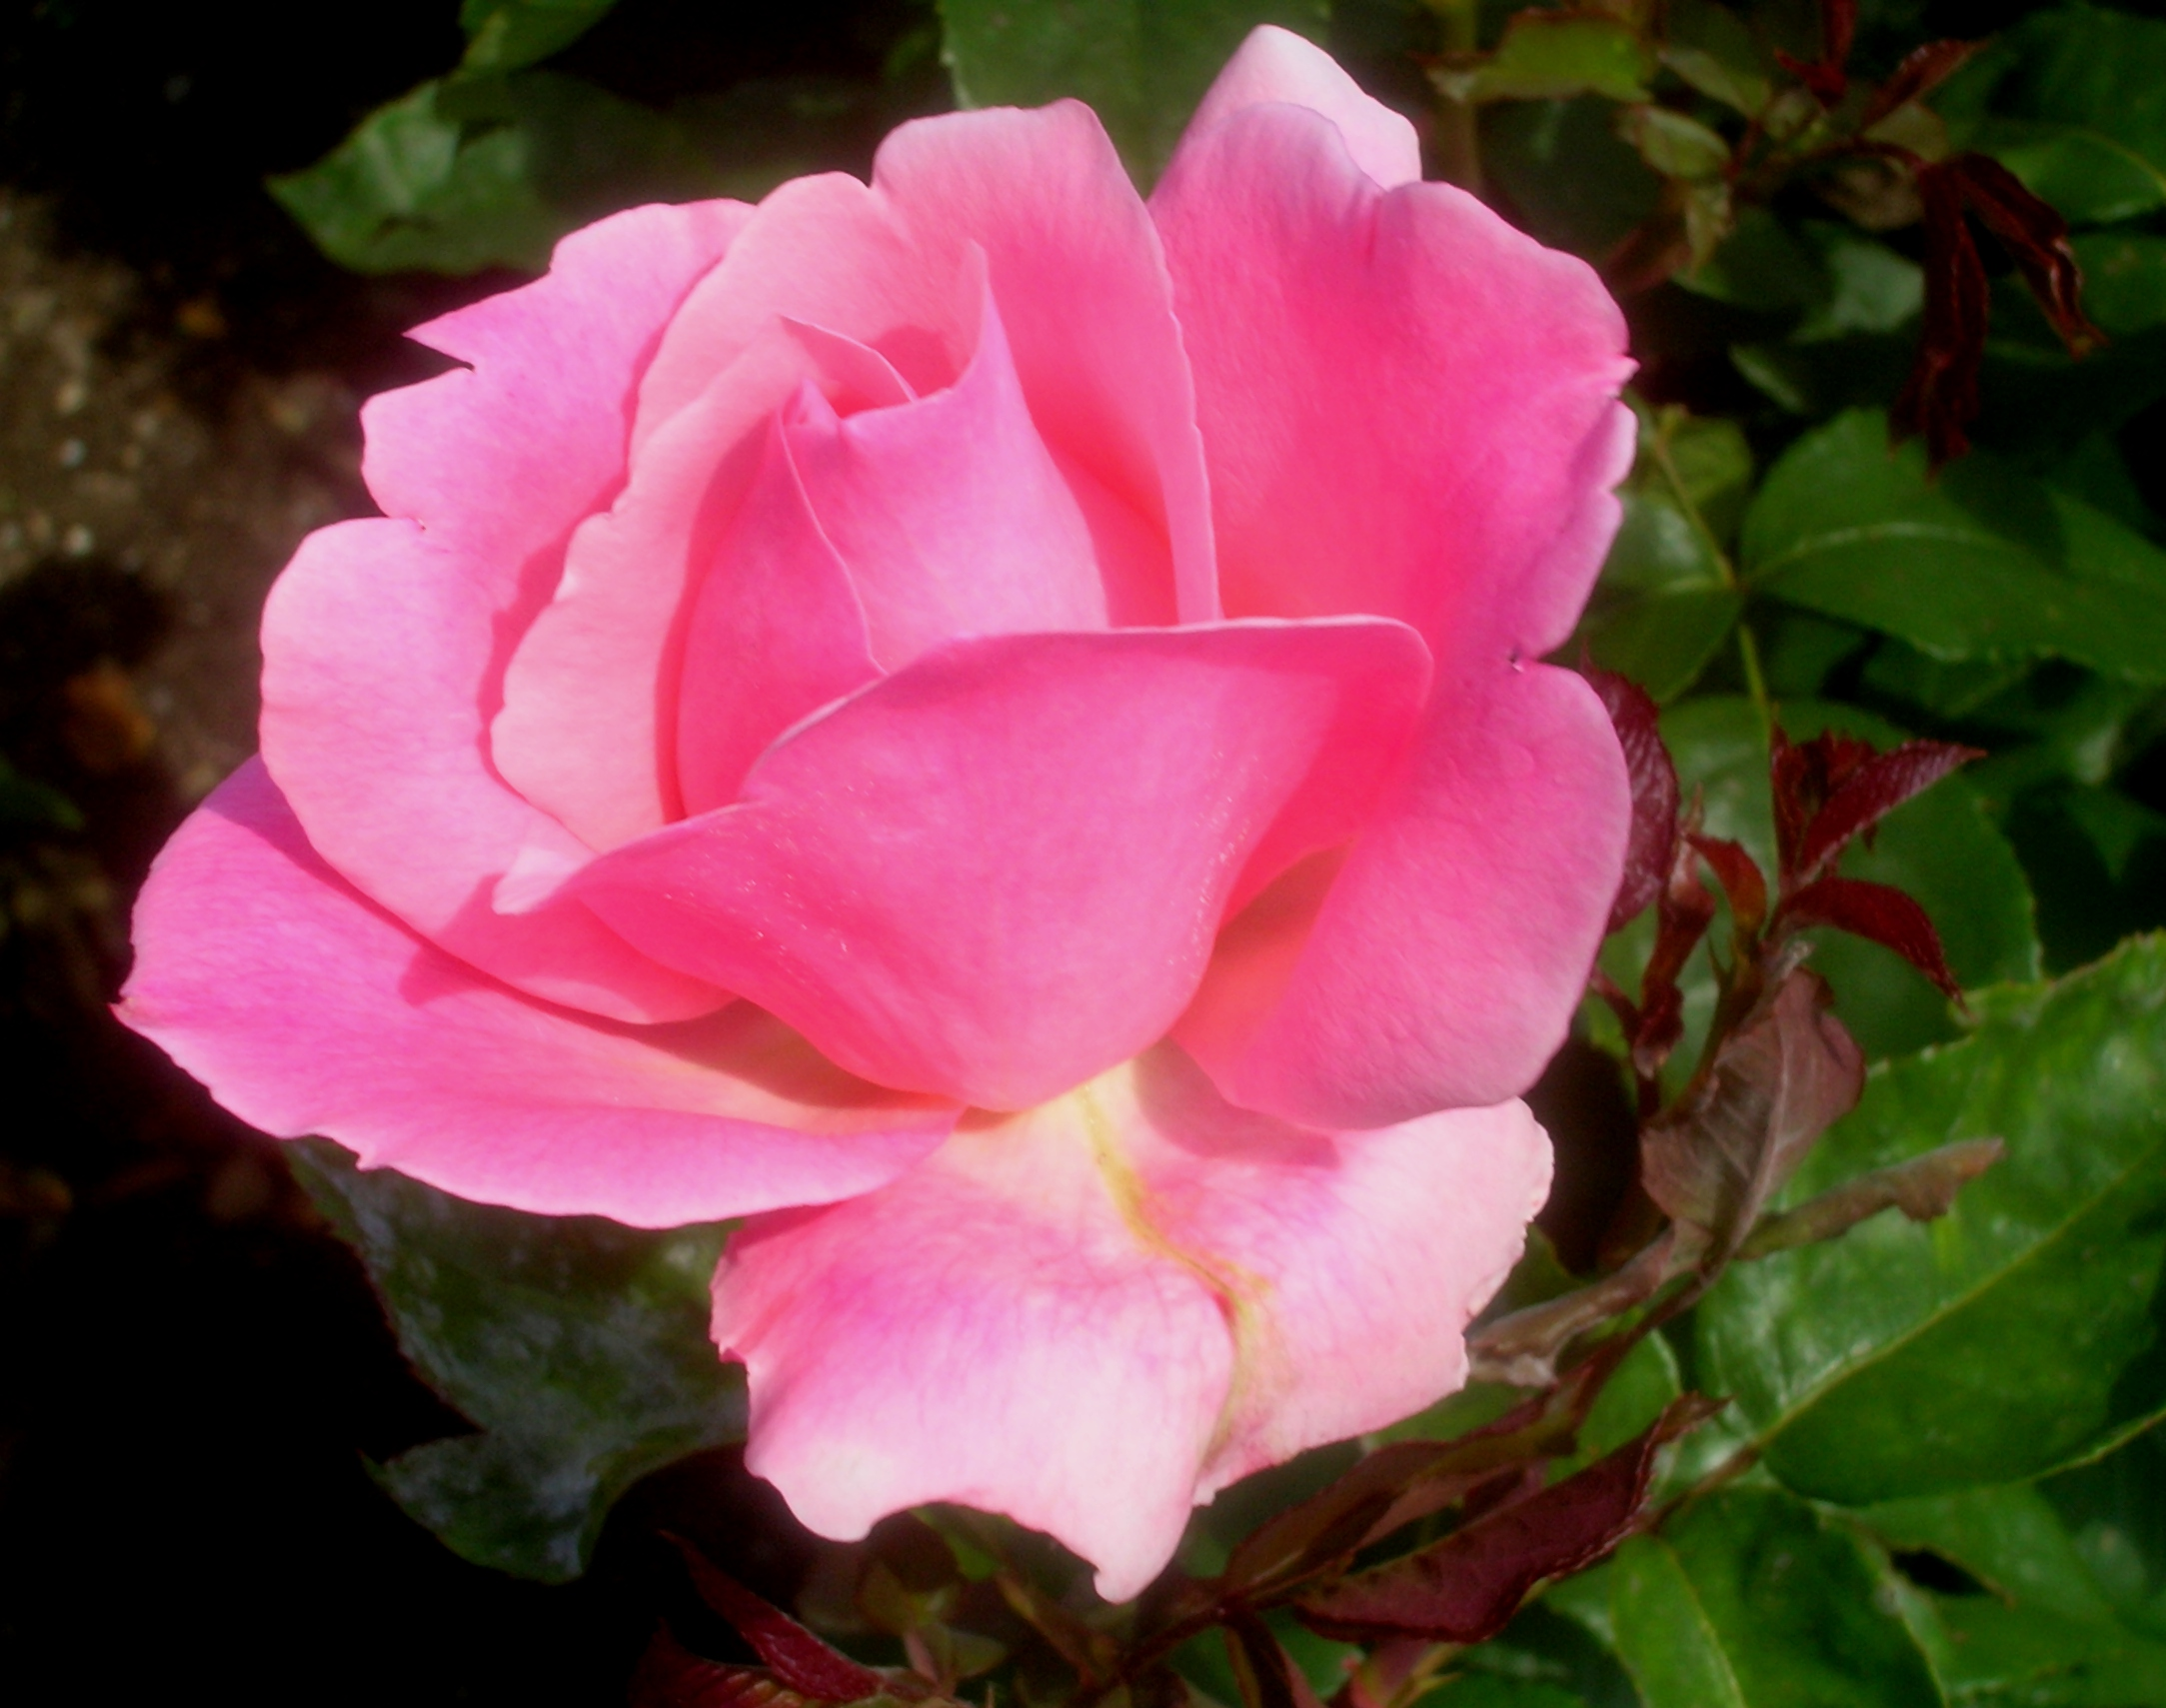 Rosa Stunning Rosa With Rosa Great Rosa With Rosa Awesome